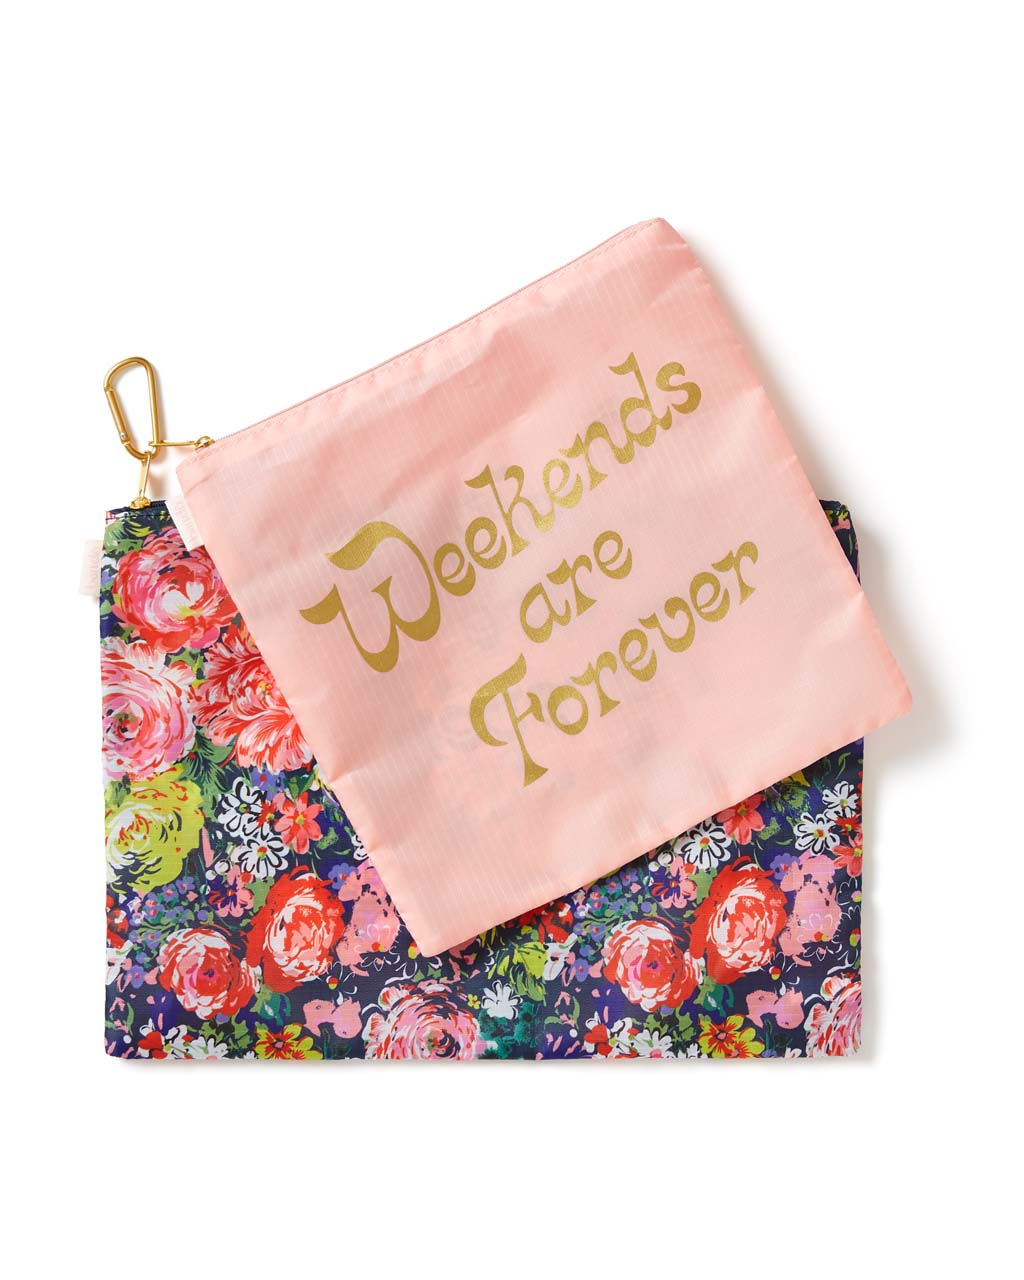 This Large Carryall Duo comes in a pink with 'Weekends Are Forever' printed on the front and colorful floral design.